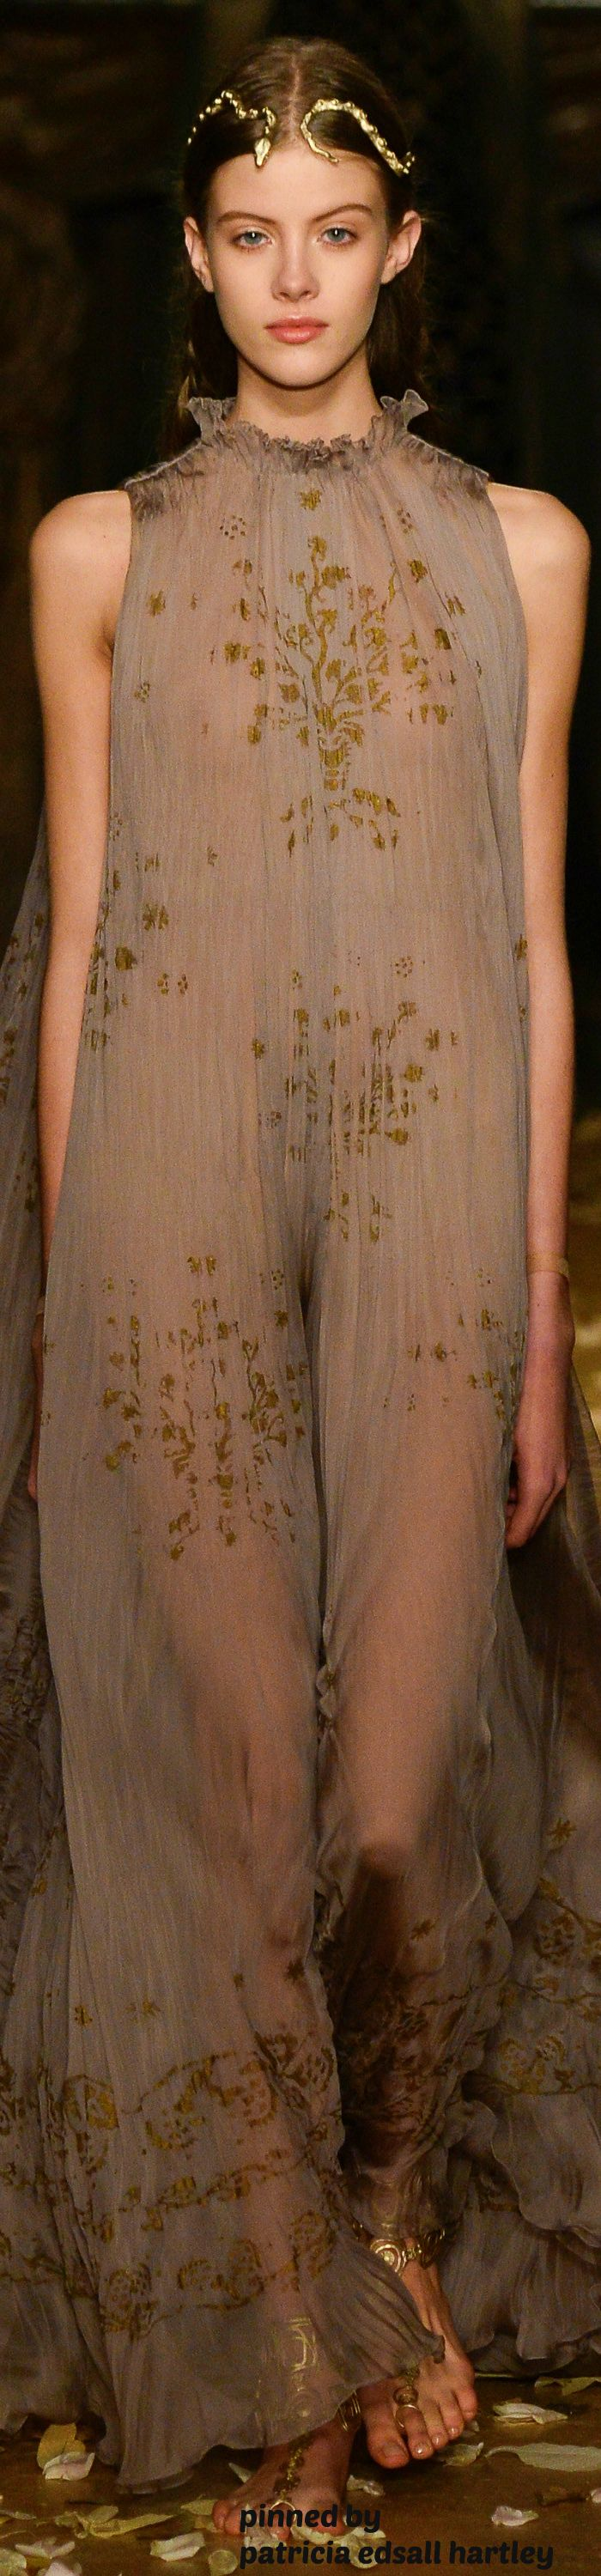 Valentino Spring 2016 Couture (=)